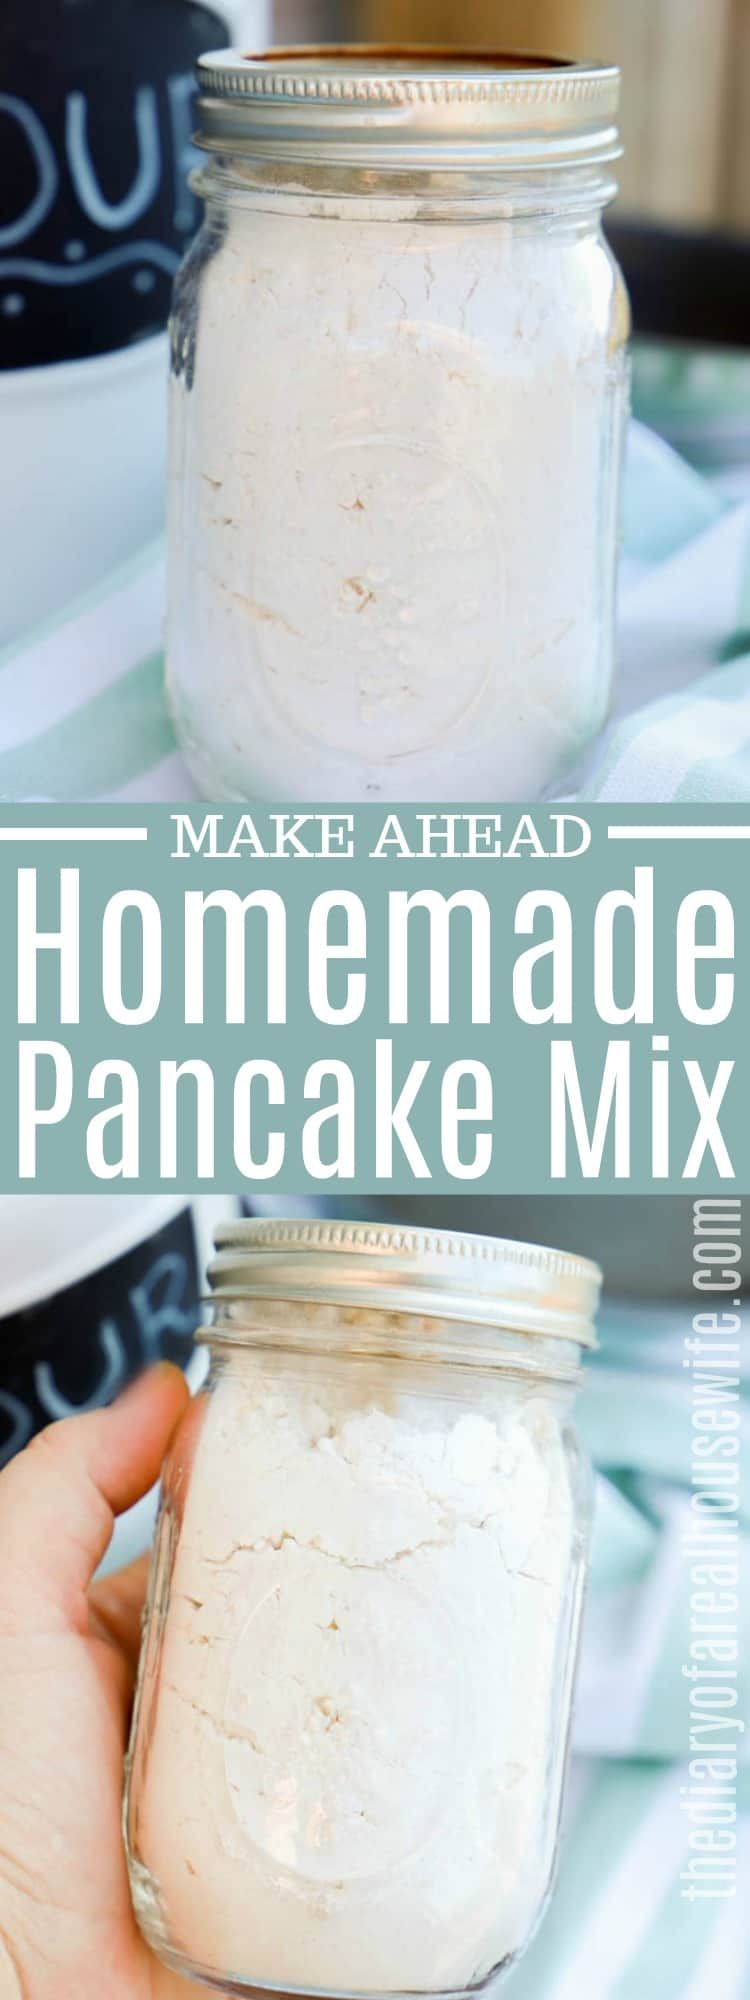 Homemade pancake mix i love how simple this is to make